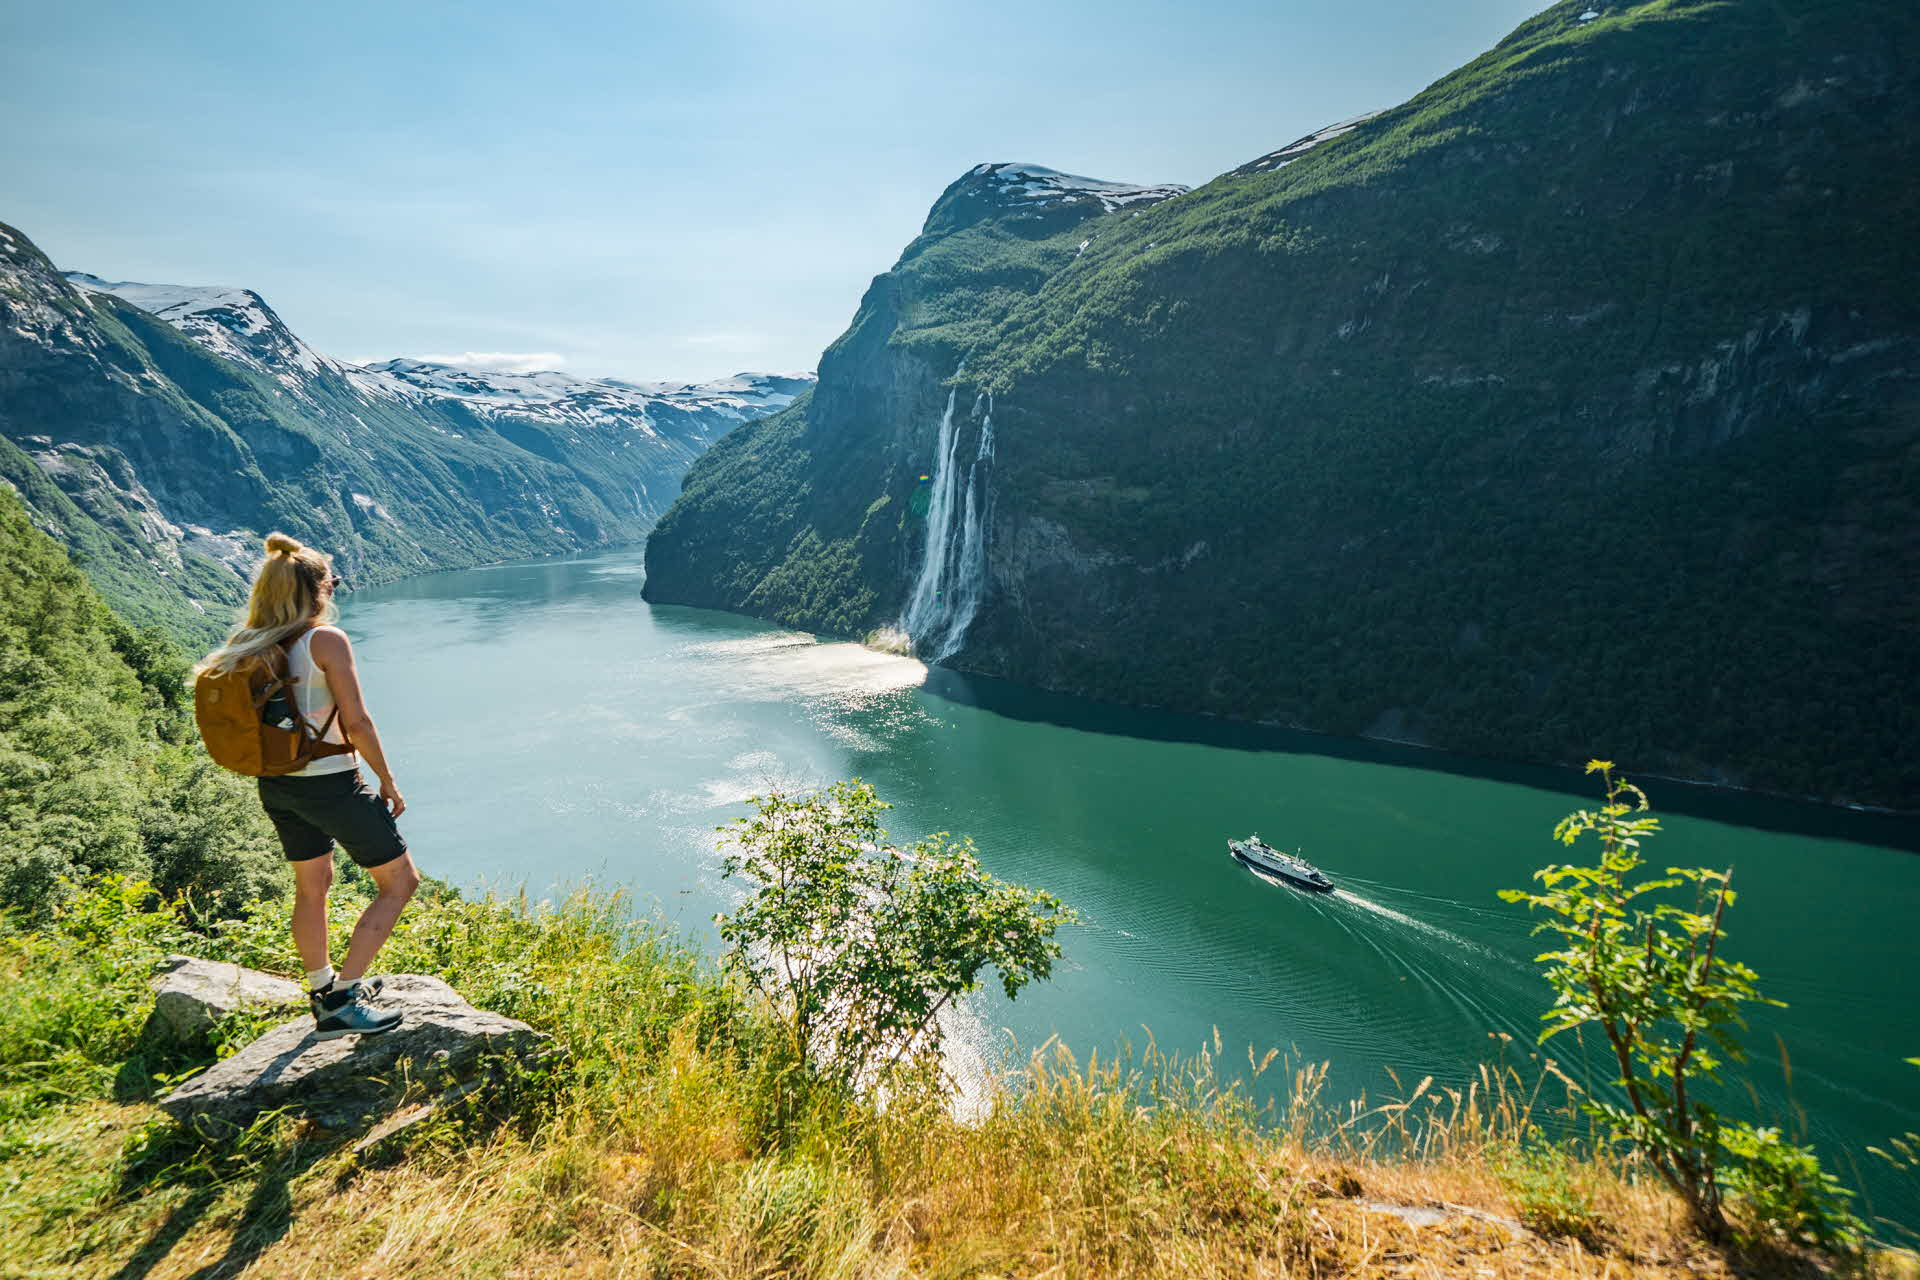 A woman looking down on the Geirangerfjord while hiking